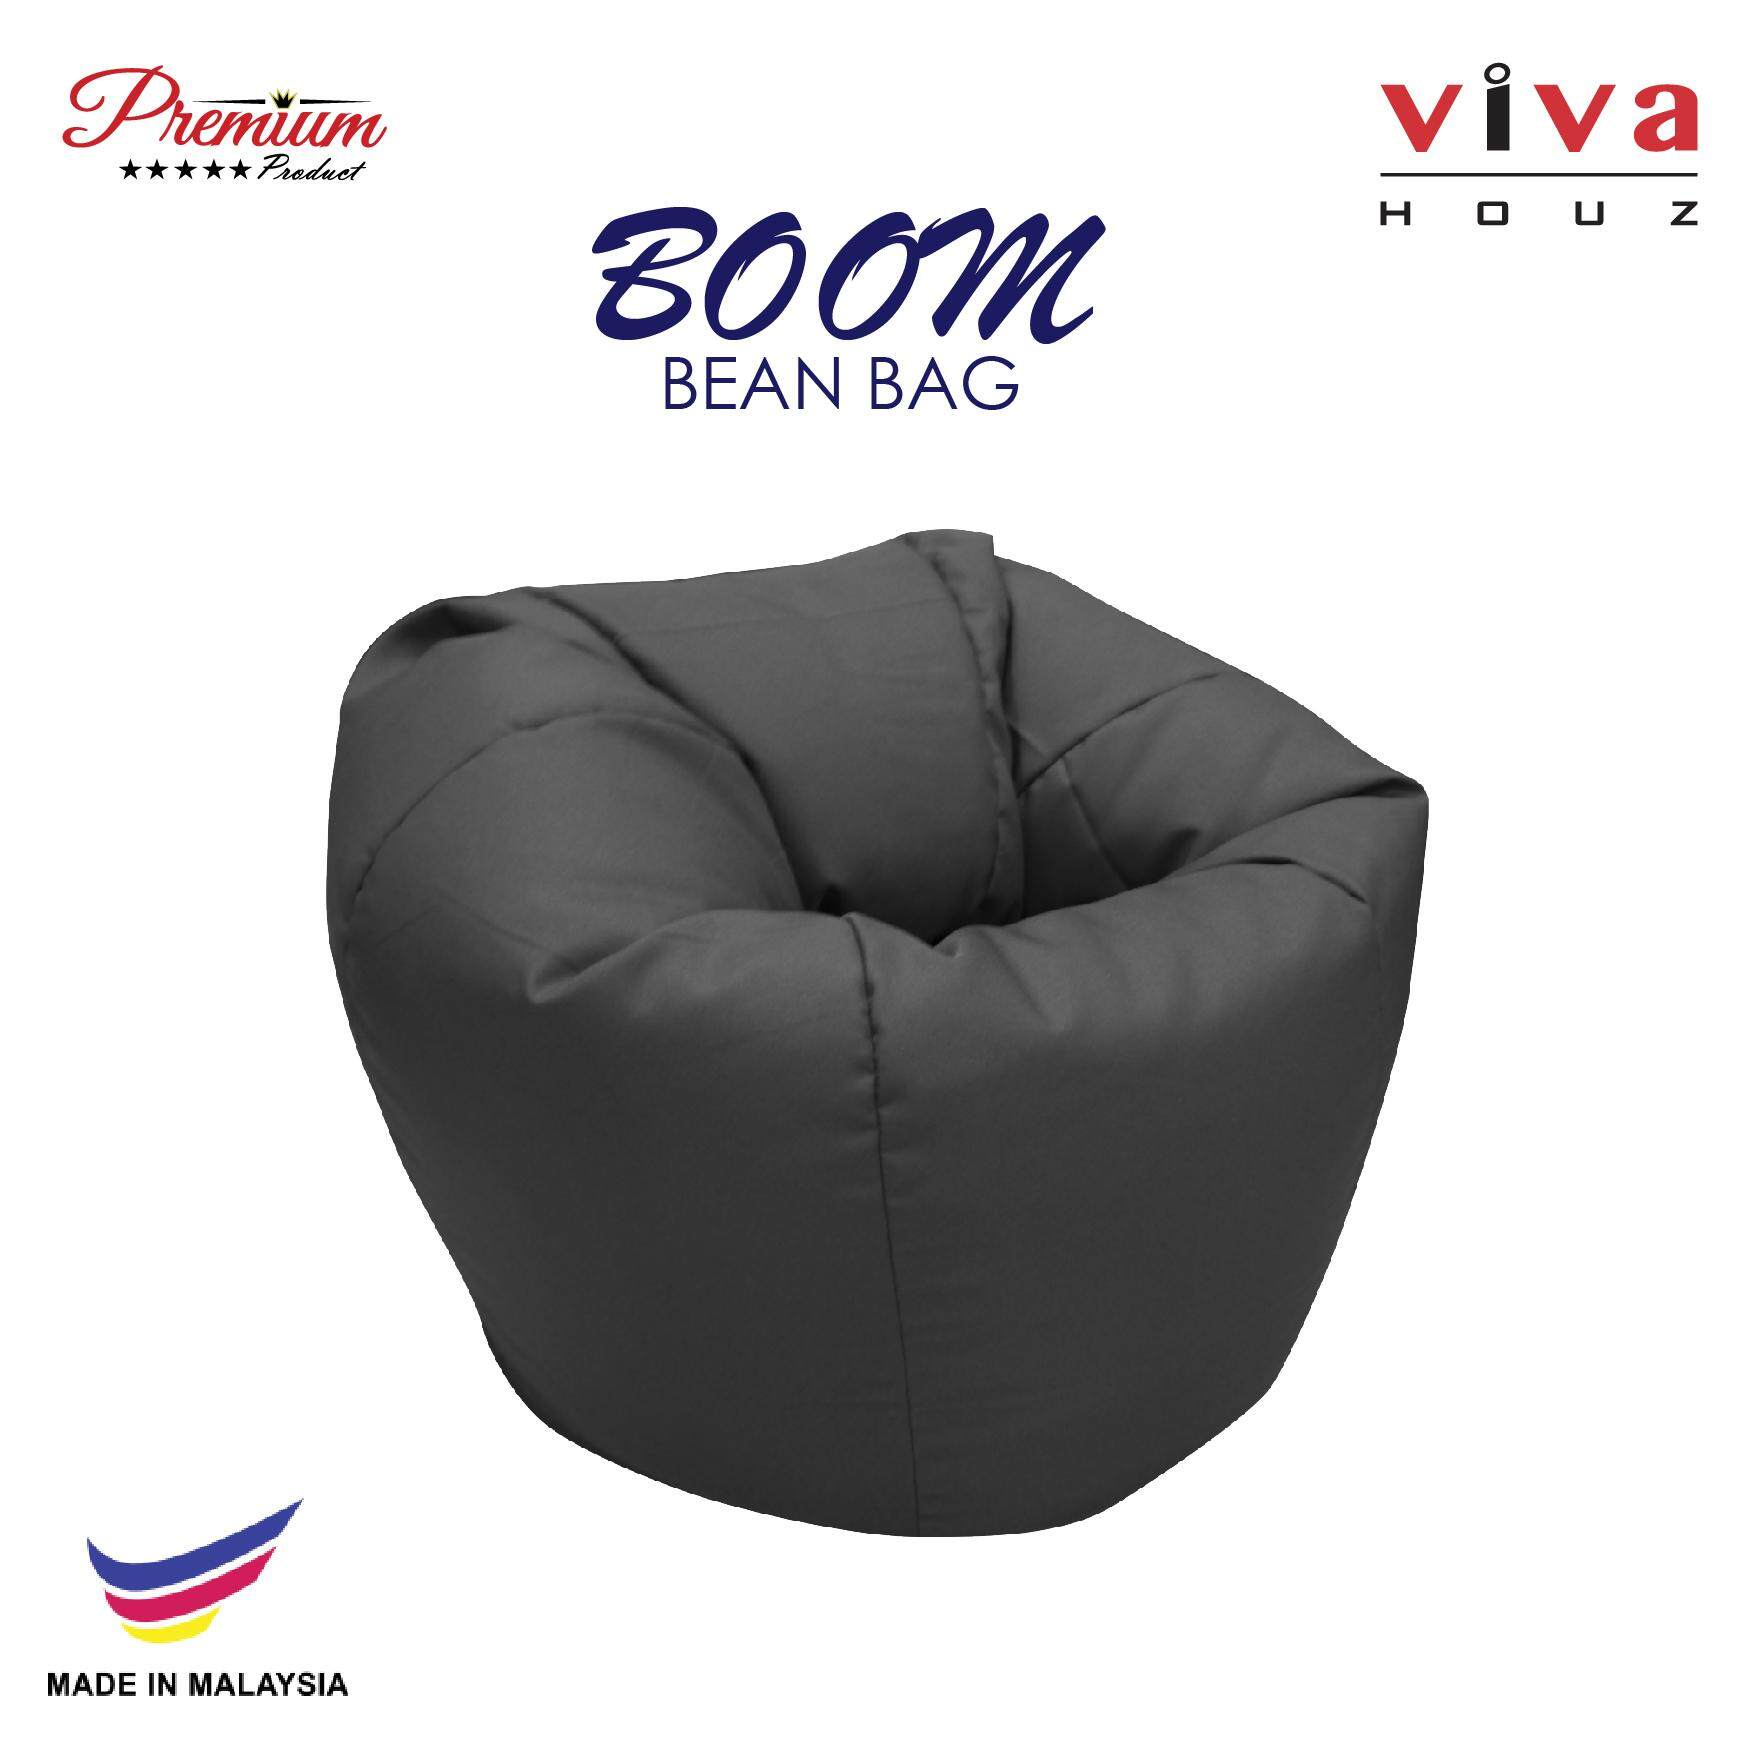 HOT SELLING : Viva Houz Boom Bean Bag Sofa Pouffe Chair L Size Grey Made In  Malaysia